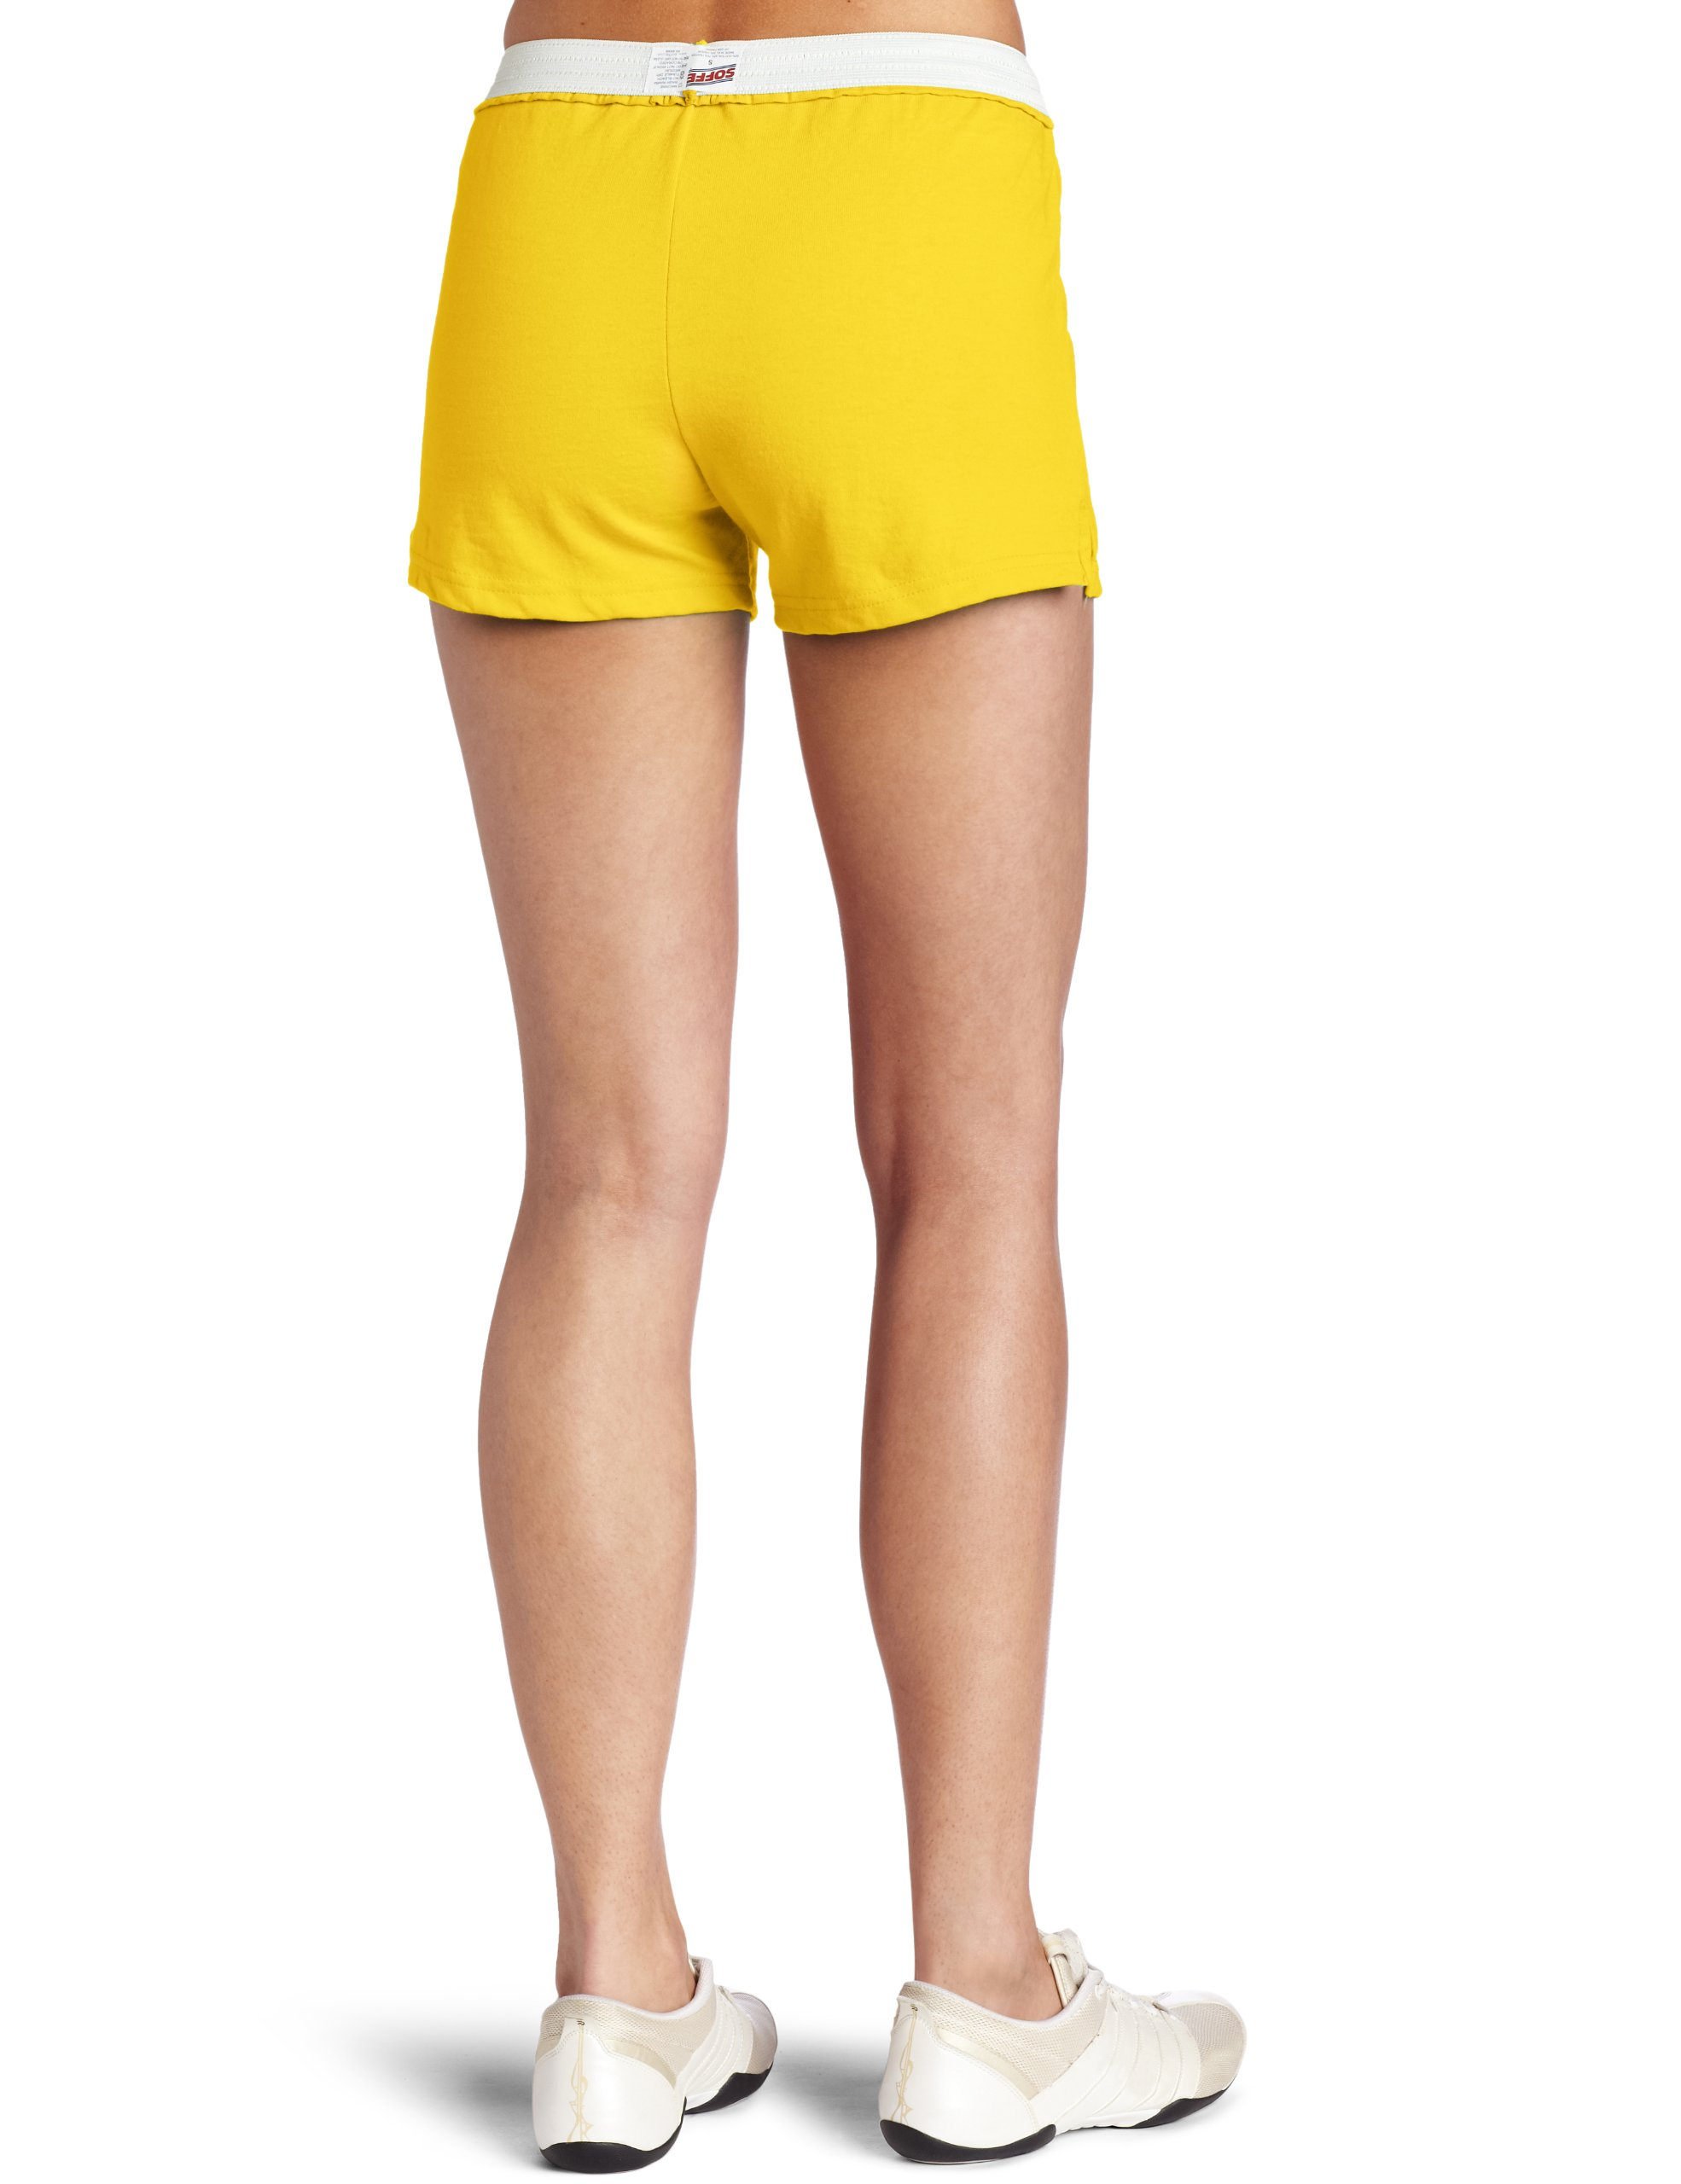 Soffe Juniors Athletic Short, Gold, X-Small